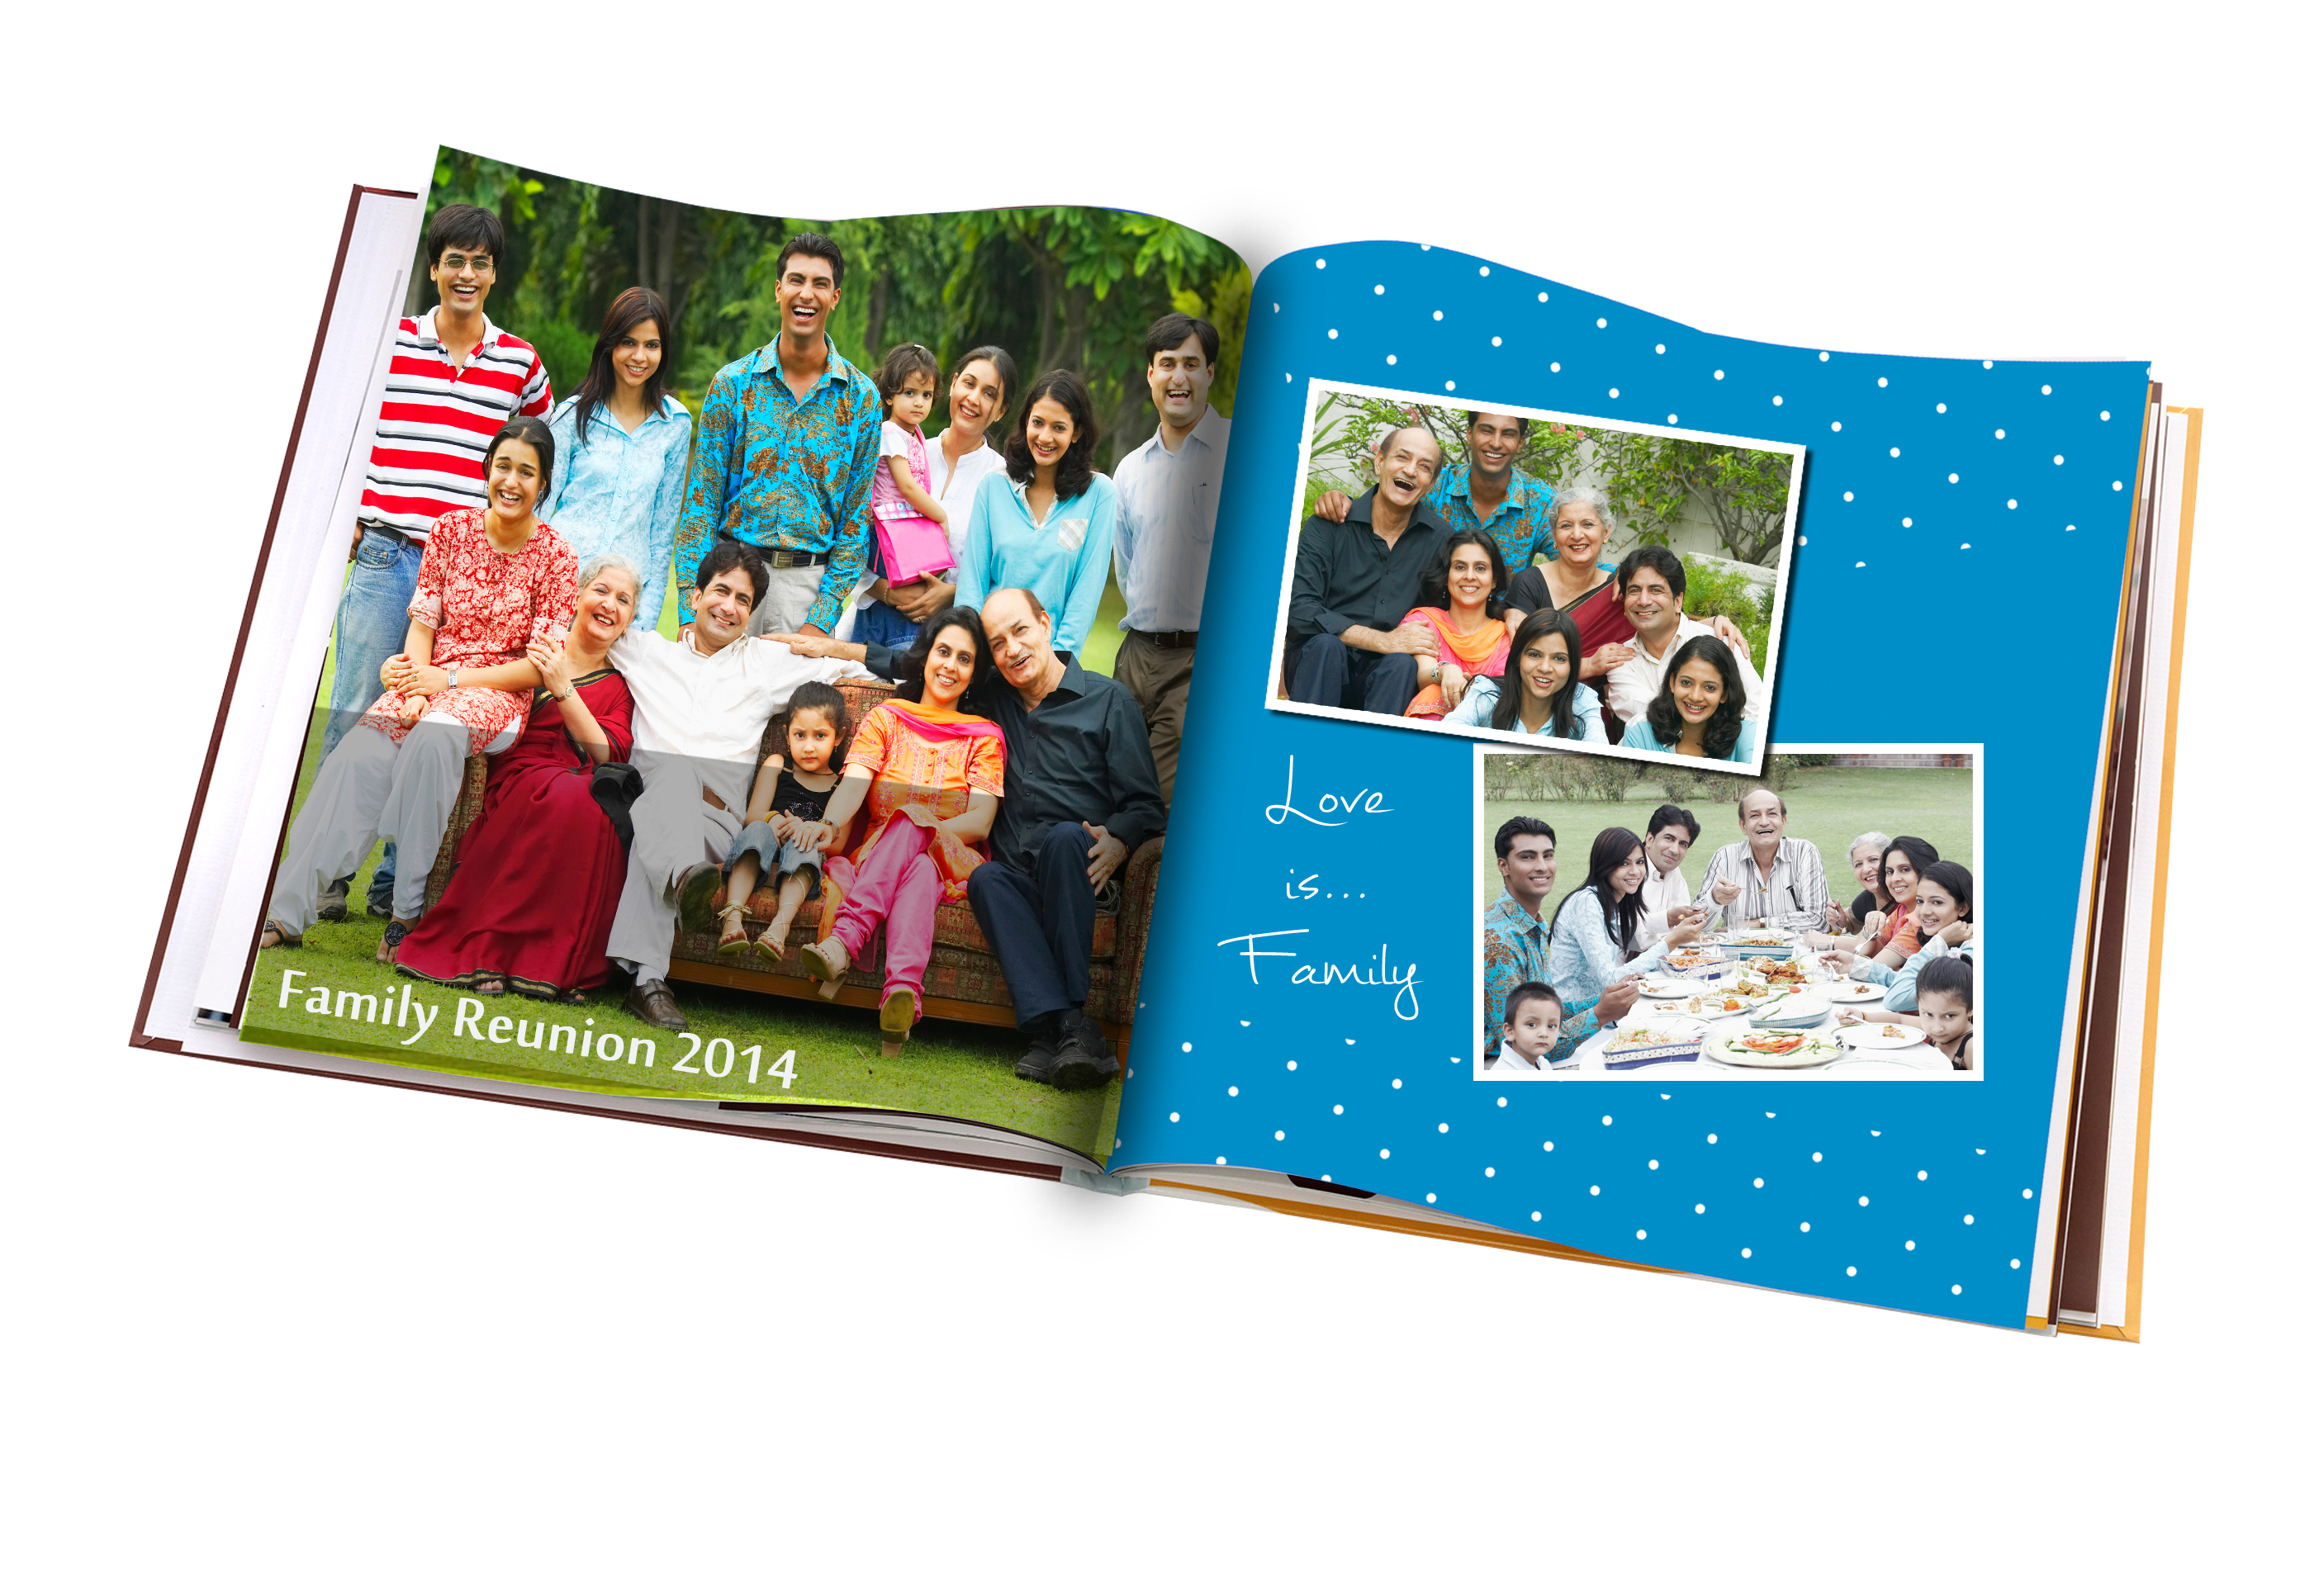 Family reunion book